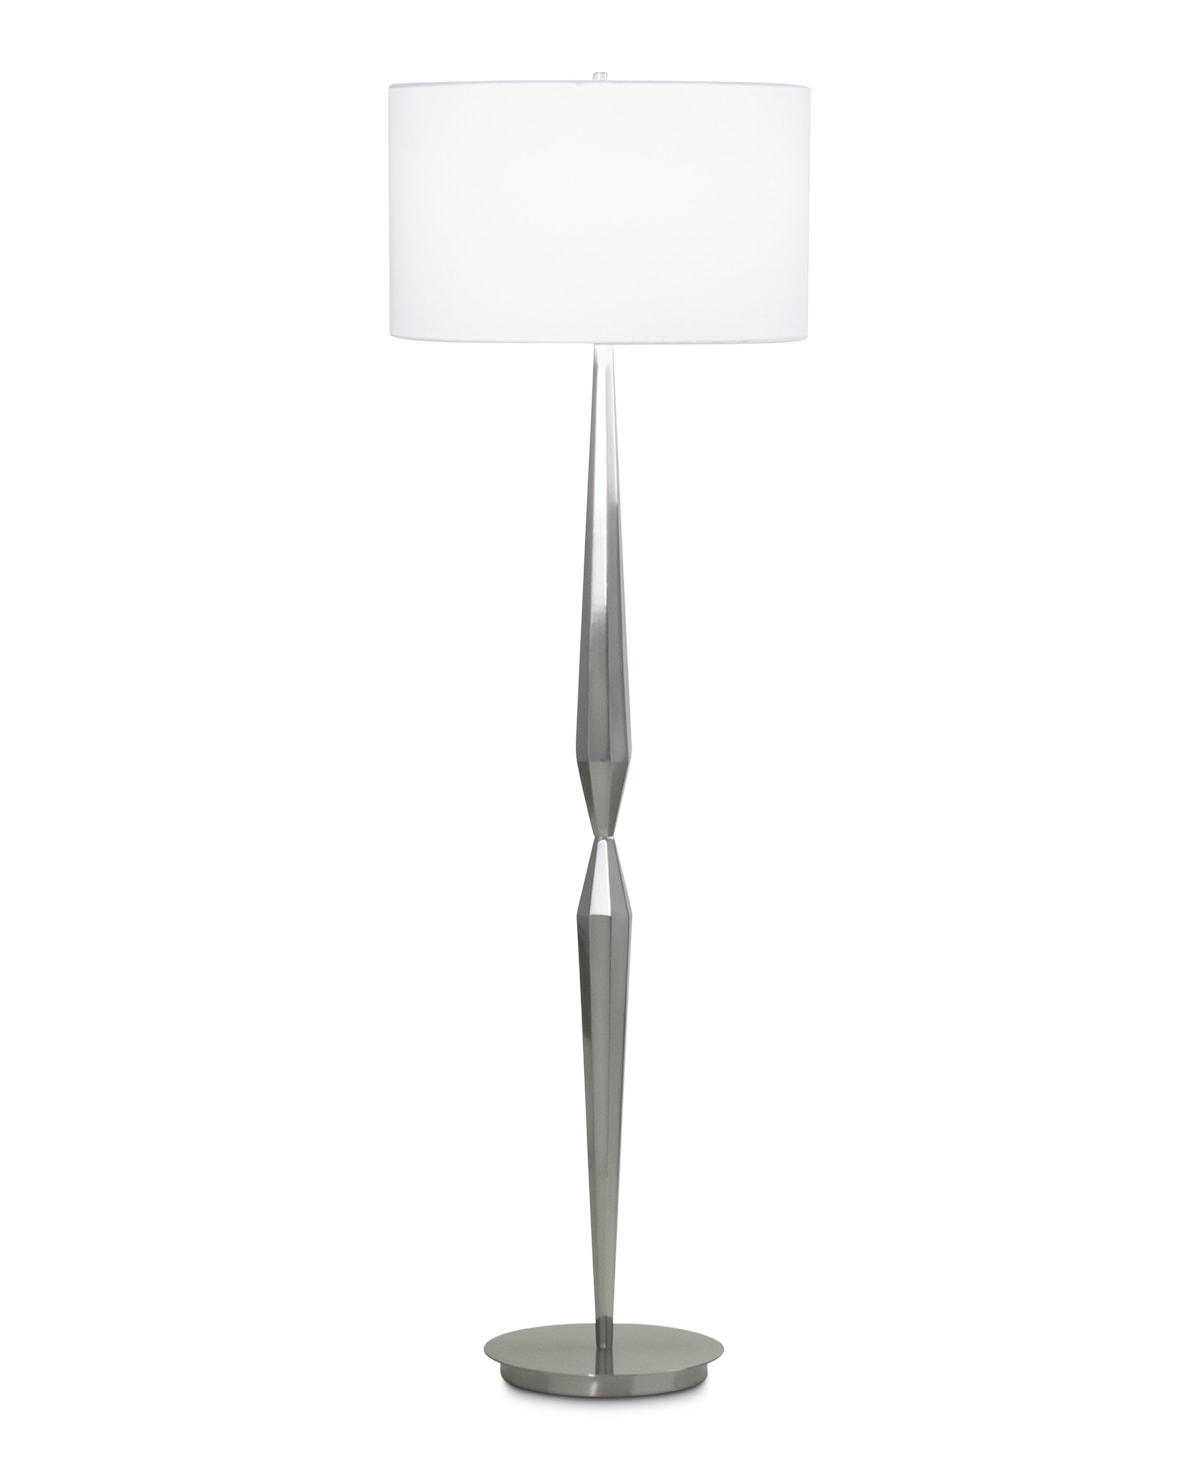 FlowDecor Shaw Floor Lamp in metal with brushed nickel finish and white linen drum shade (# 3885)